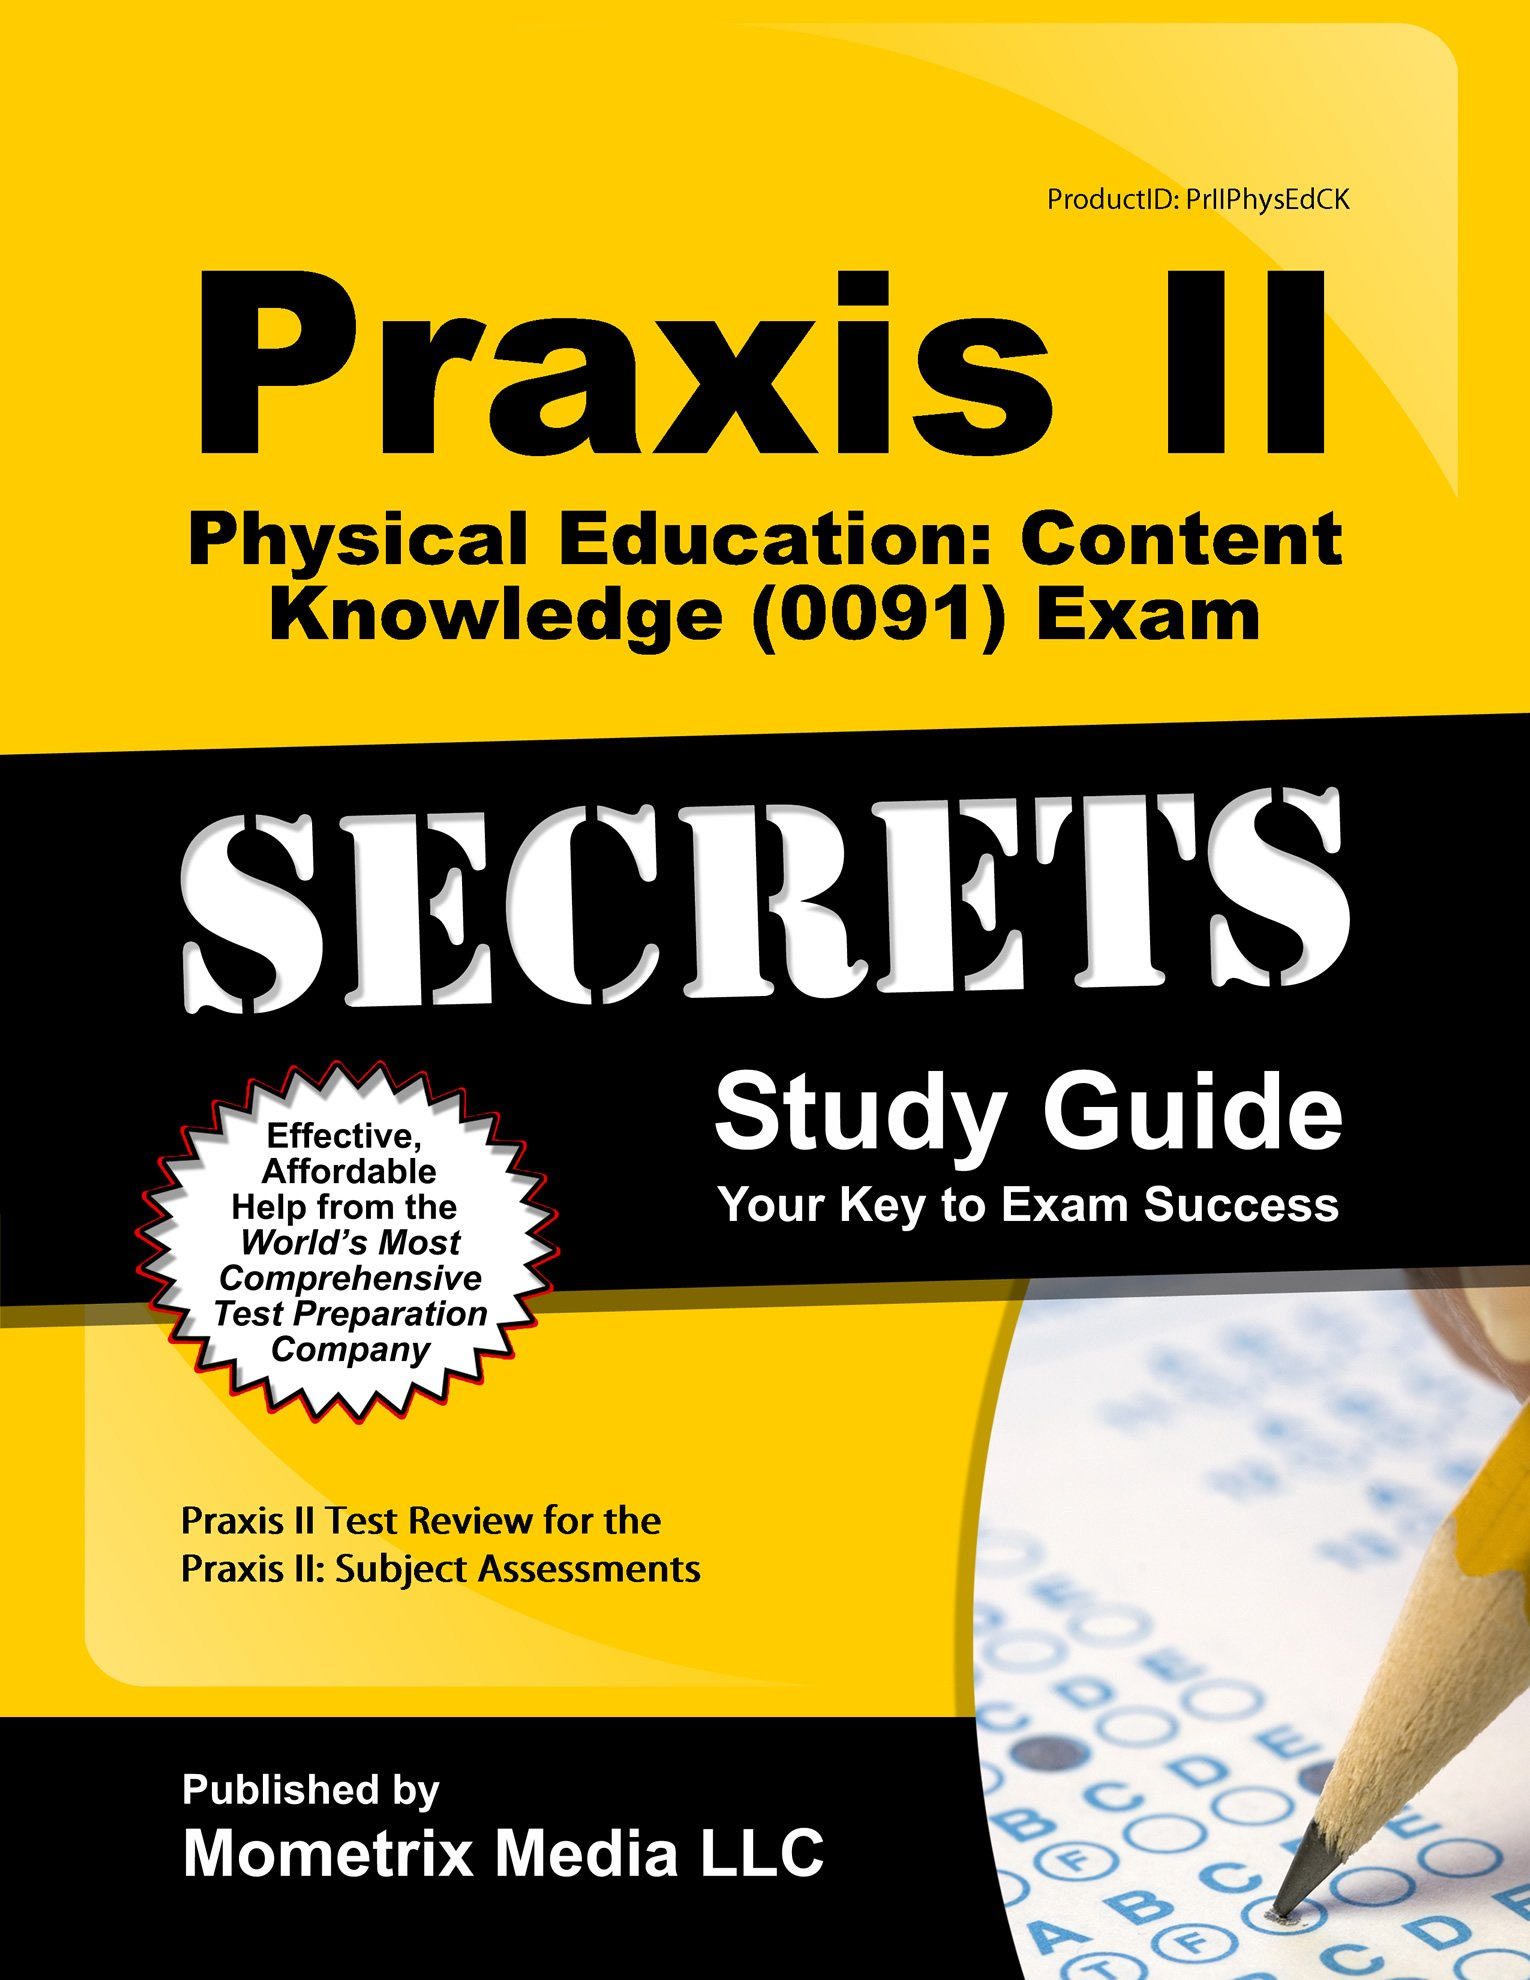 praxis ii physical education content knowledge 0091 exam praxis ii physical education content knowledge 0091 exam secrets study guide praxis ii test review for the praxis ii subject assessments praxis ii